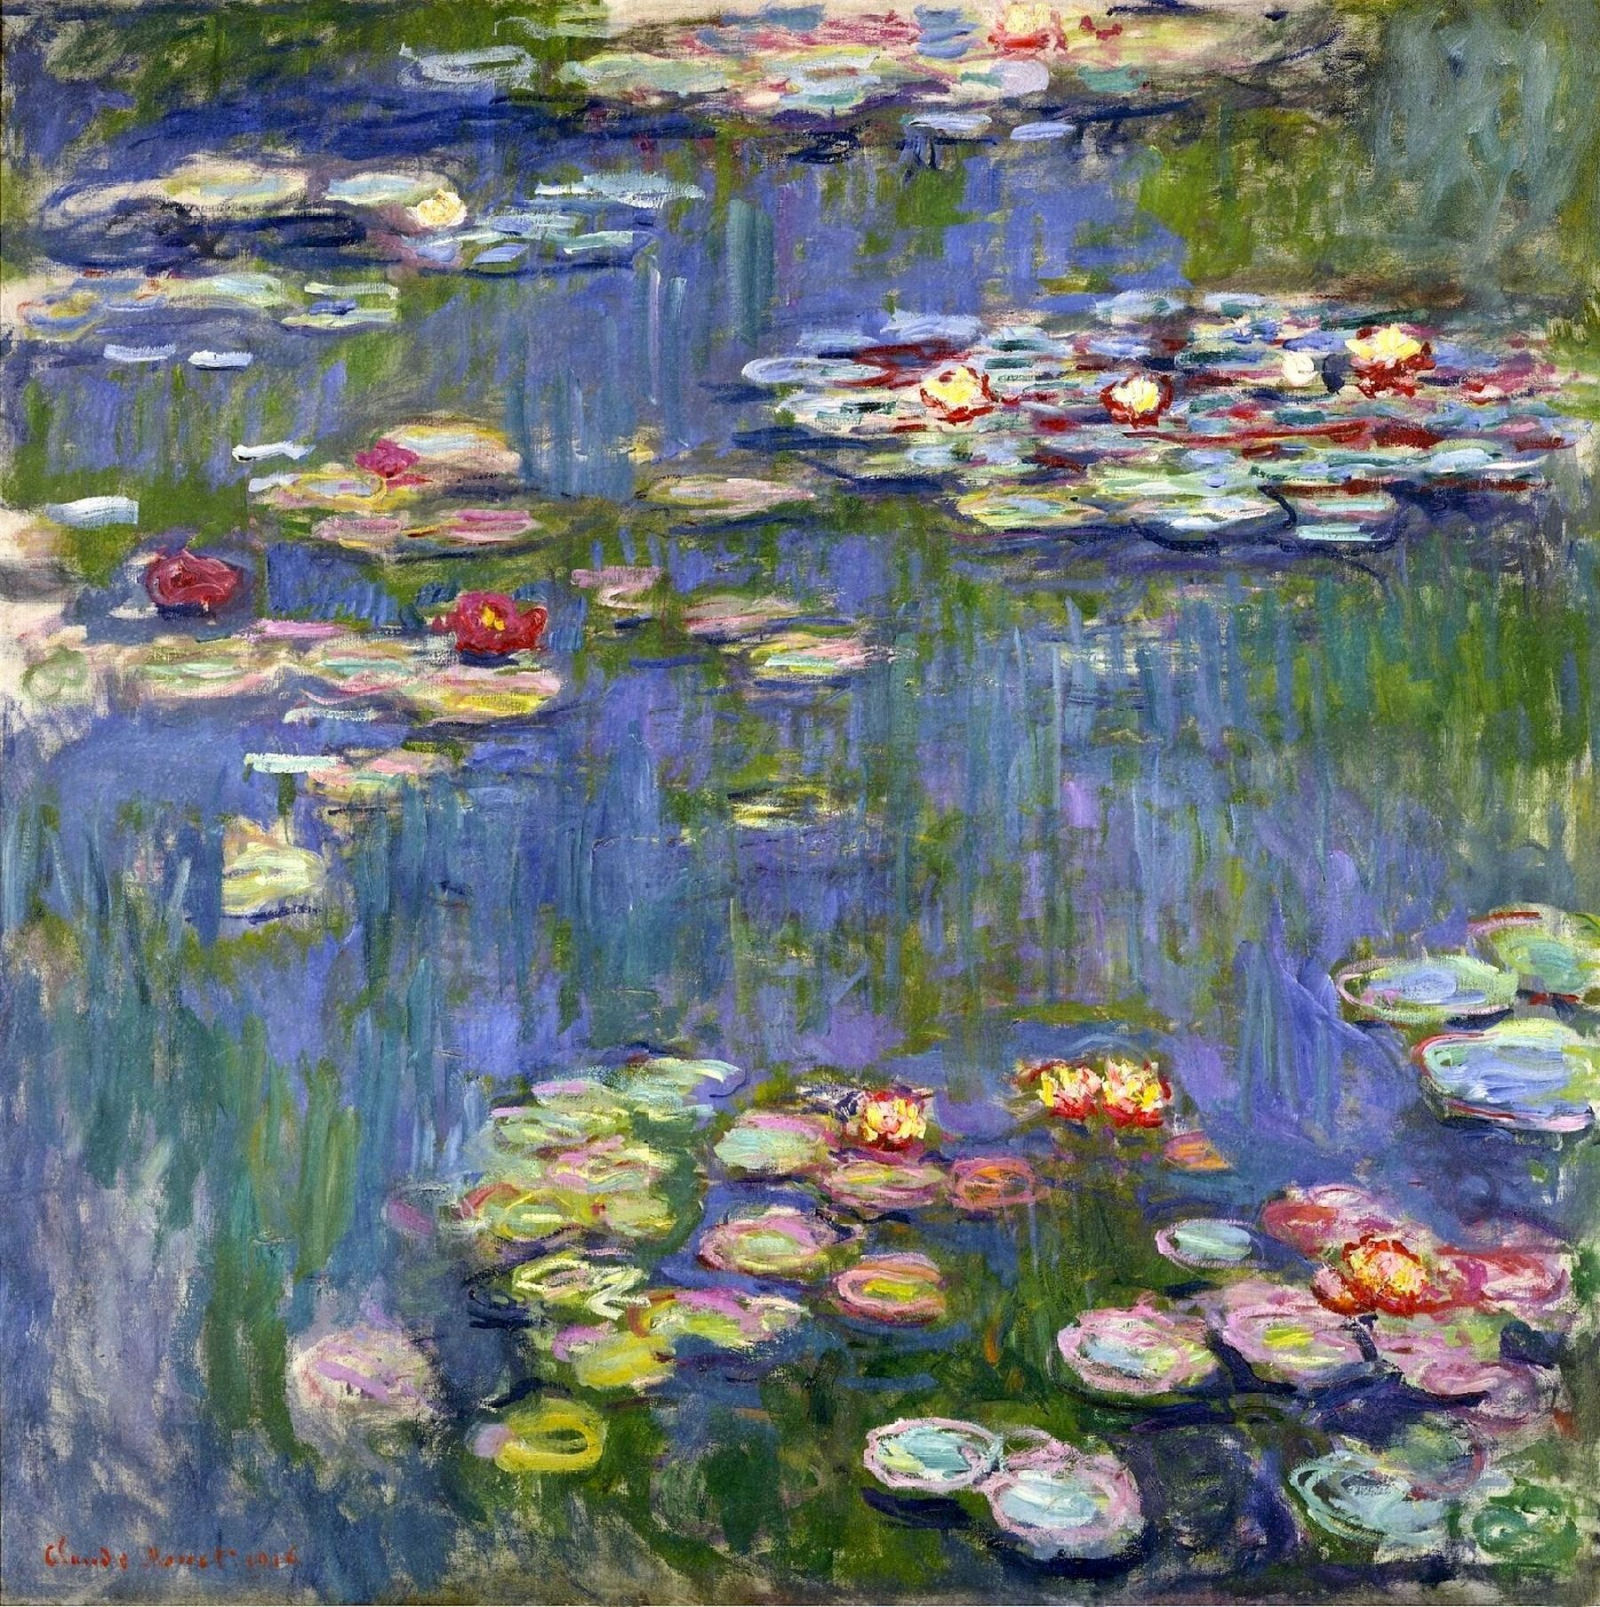 Water Lilies, 1916 - Claude Monet - WikiArt.org